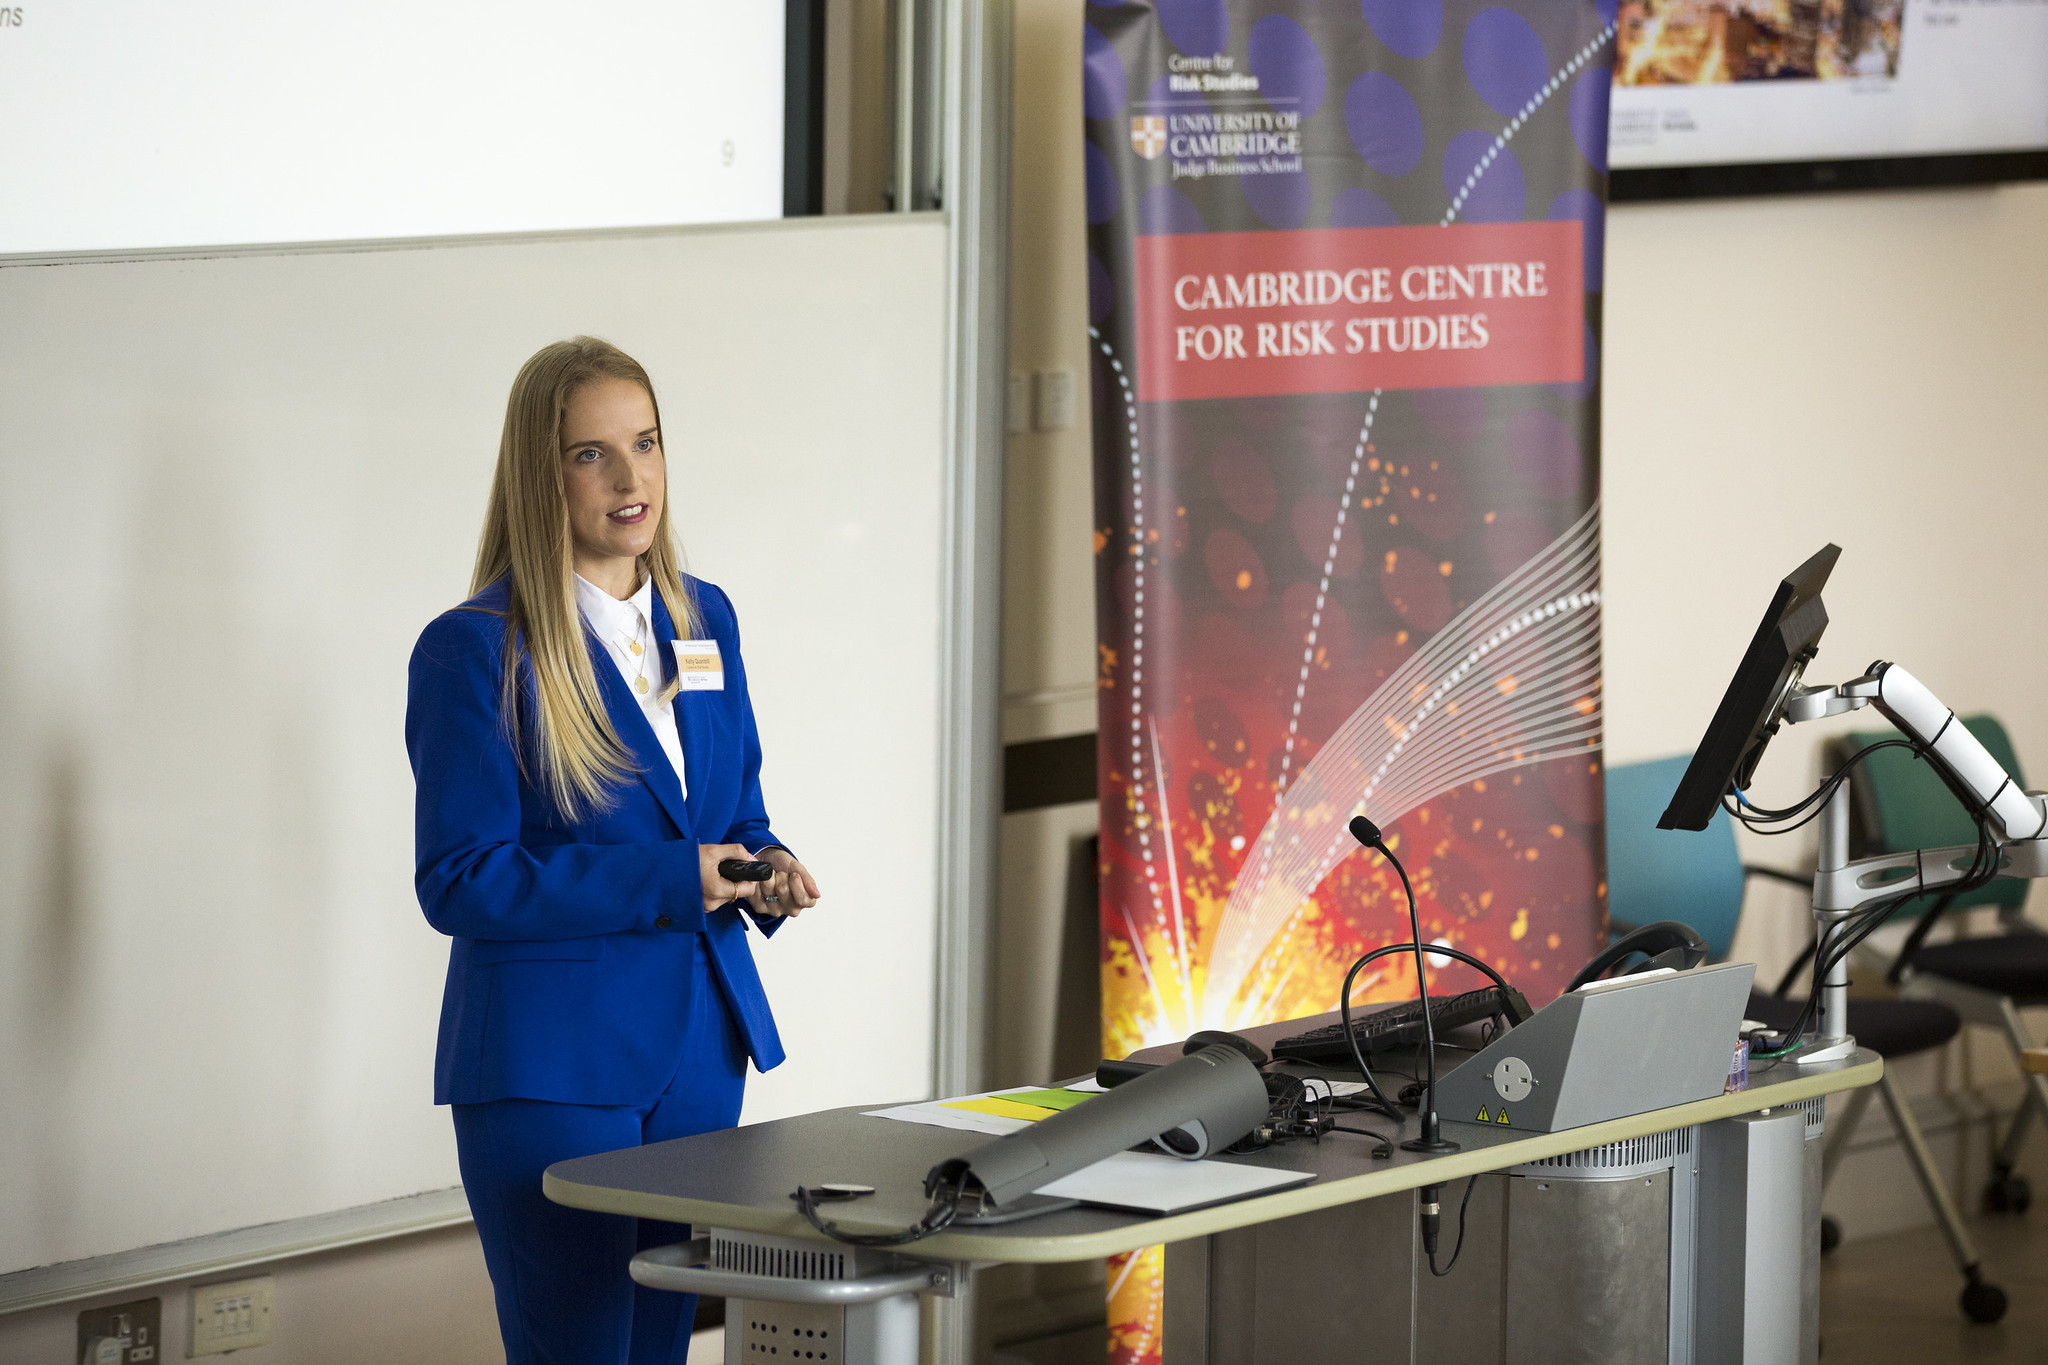 Judge Business School Cambridge Risk Summit 2019